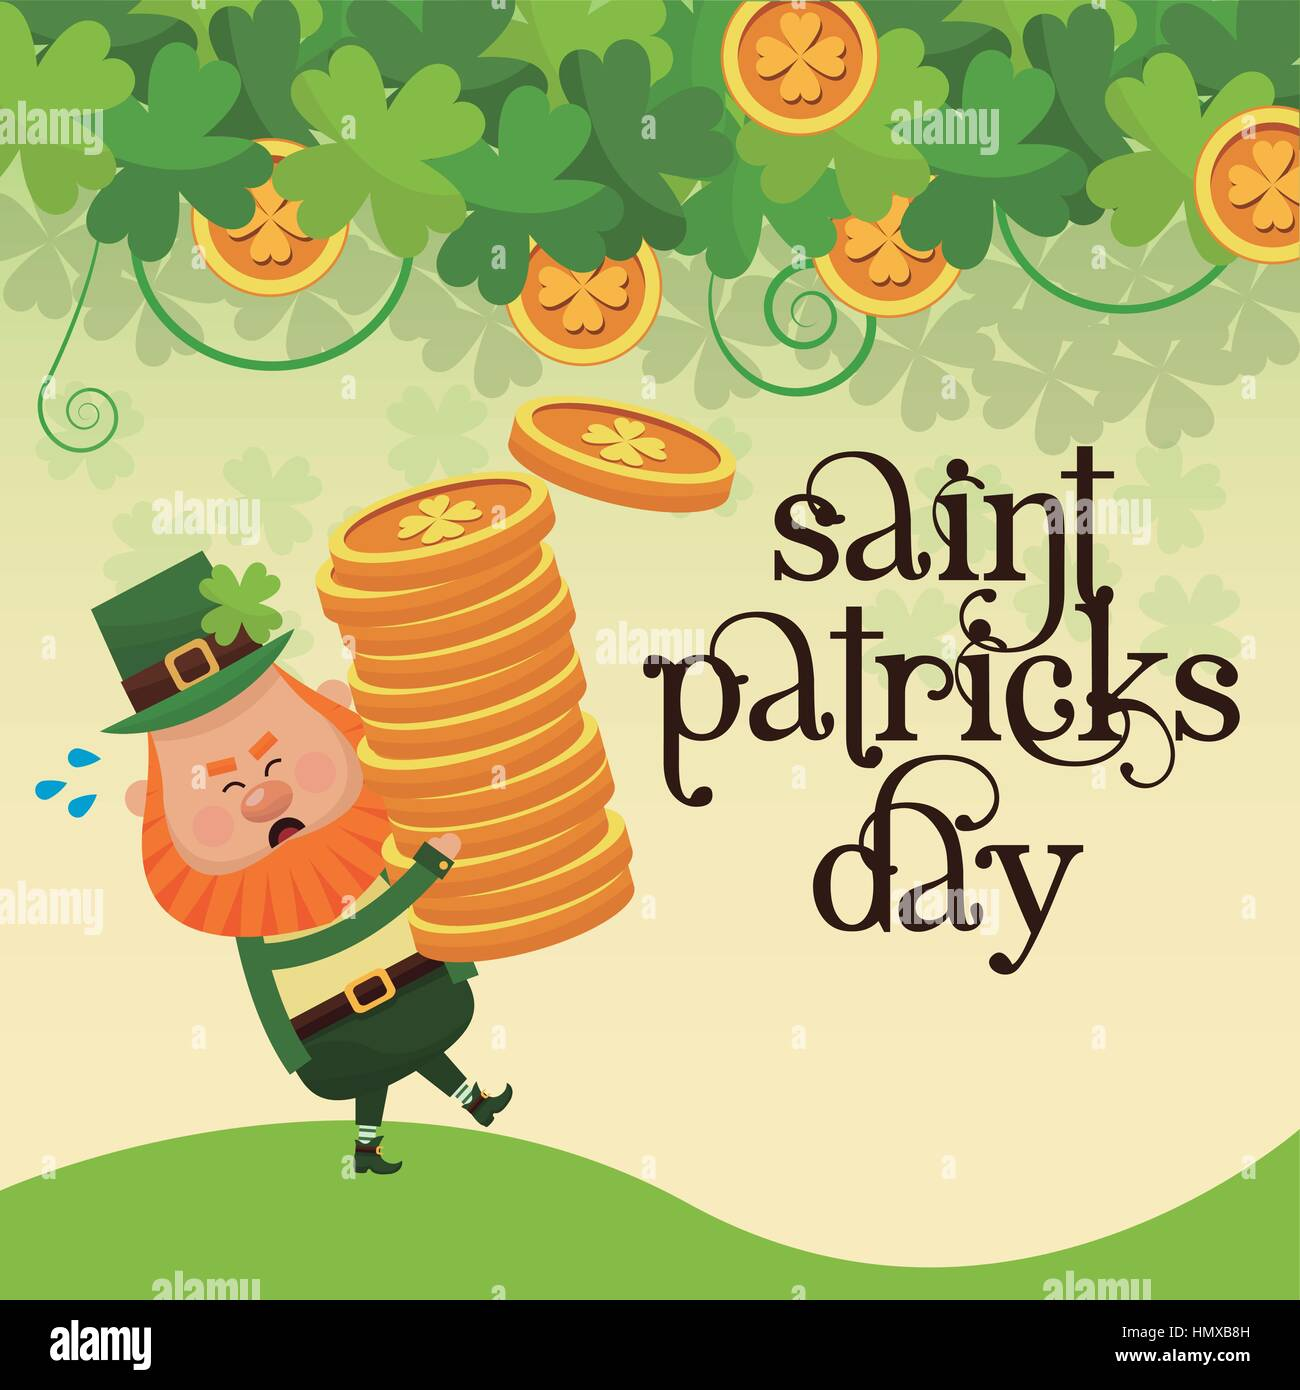 saint patricks day leprechaun carrying pile coins gold lettering poster - Stock Image